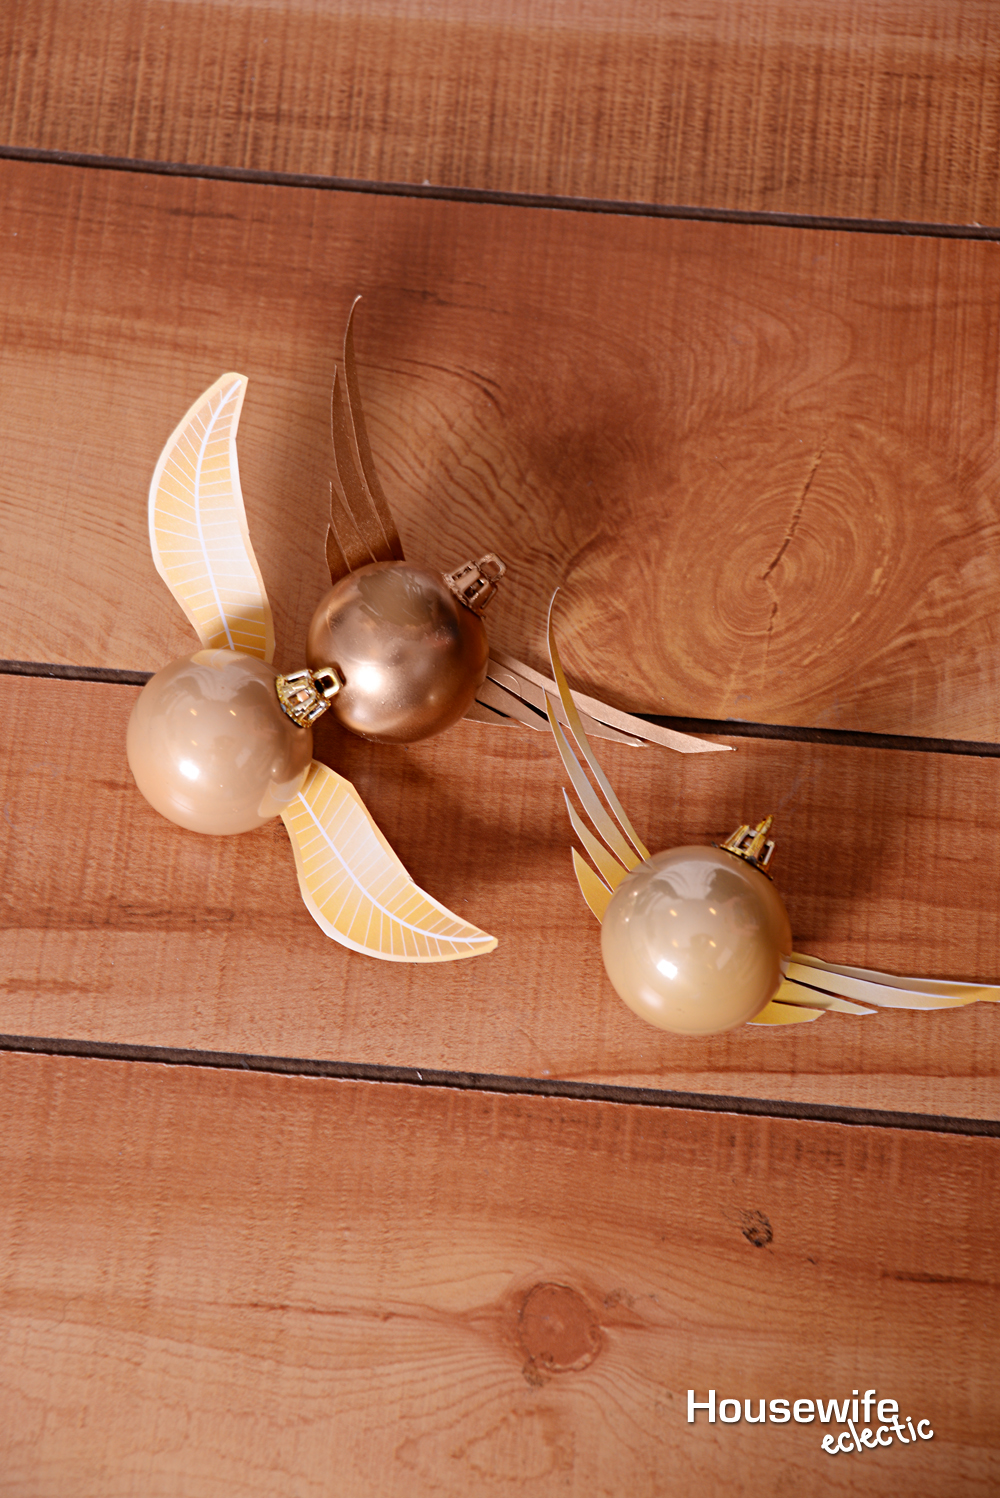 graphic regarding Golden Snitch Wings Printable named Golden Snitch Ornament with printable wings - Housewife Eclectic